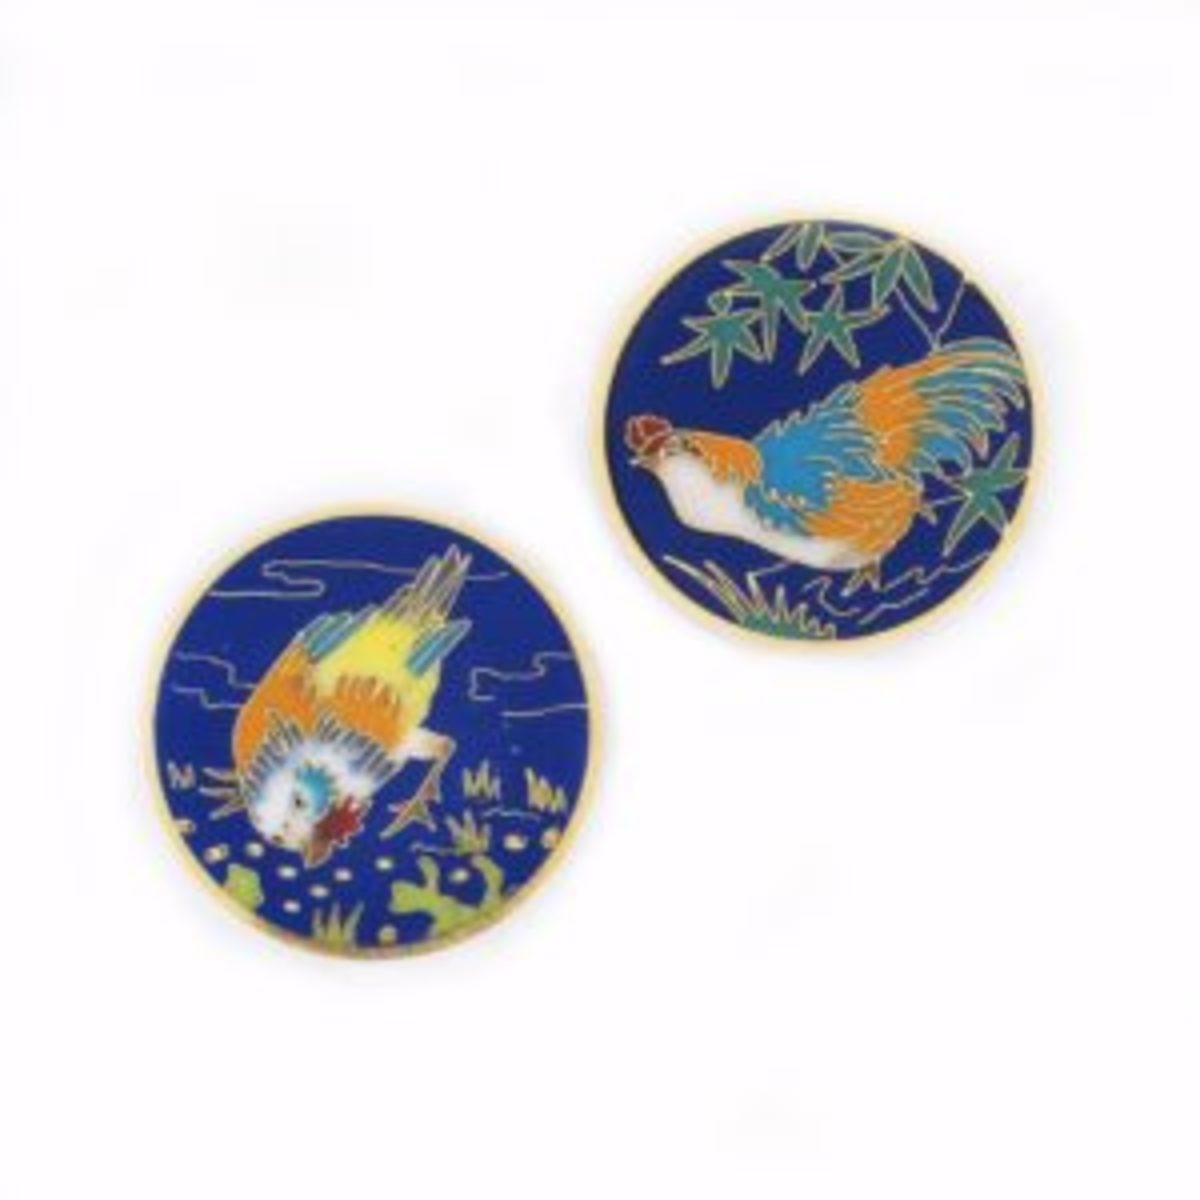 Pair of antique cuff buttons by Alexis Falize